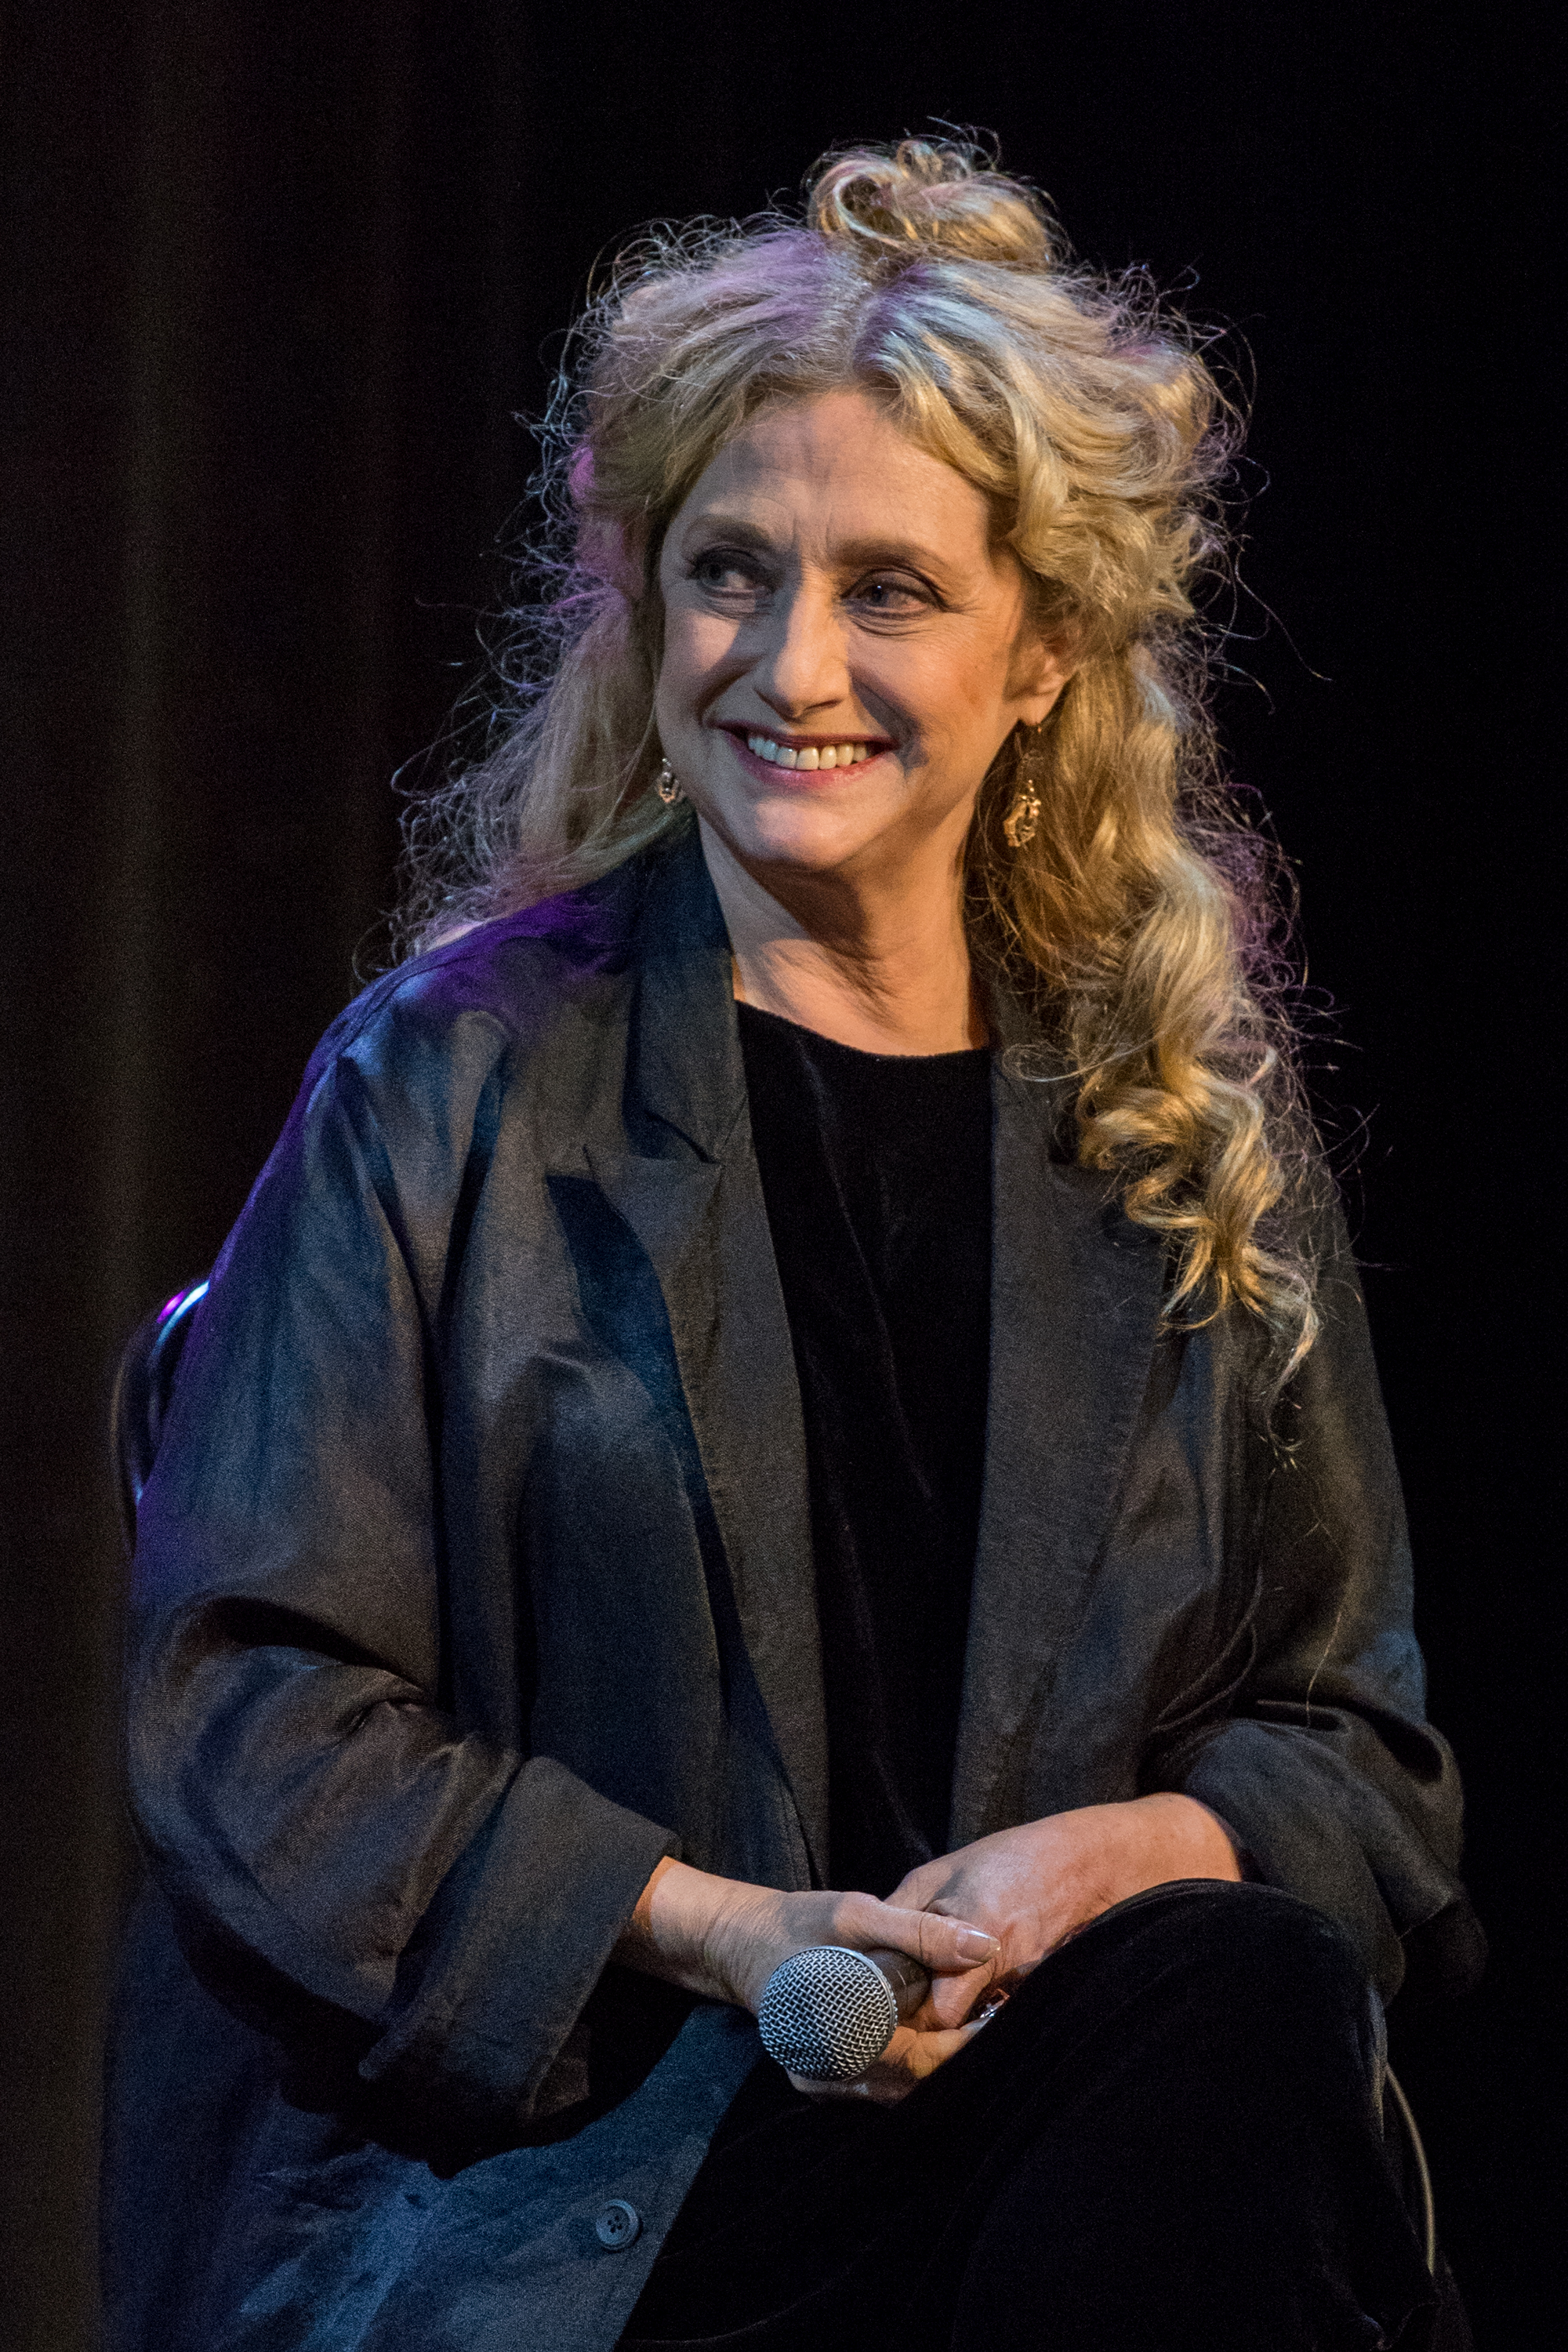 Carol Kane who has been working in Hollywood for over five decades, talks about how significant #MeToo is to her, specifically considering how it has destigmatized talking about abuse (Getty Images)